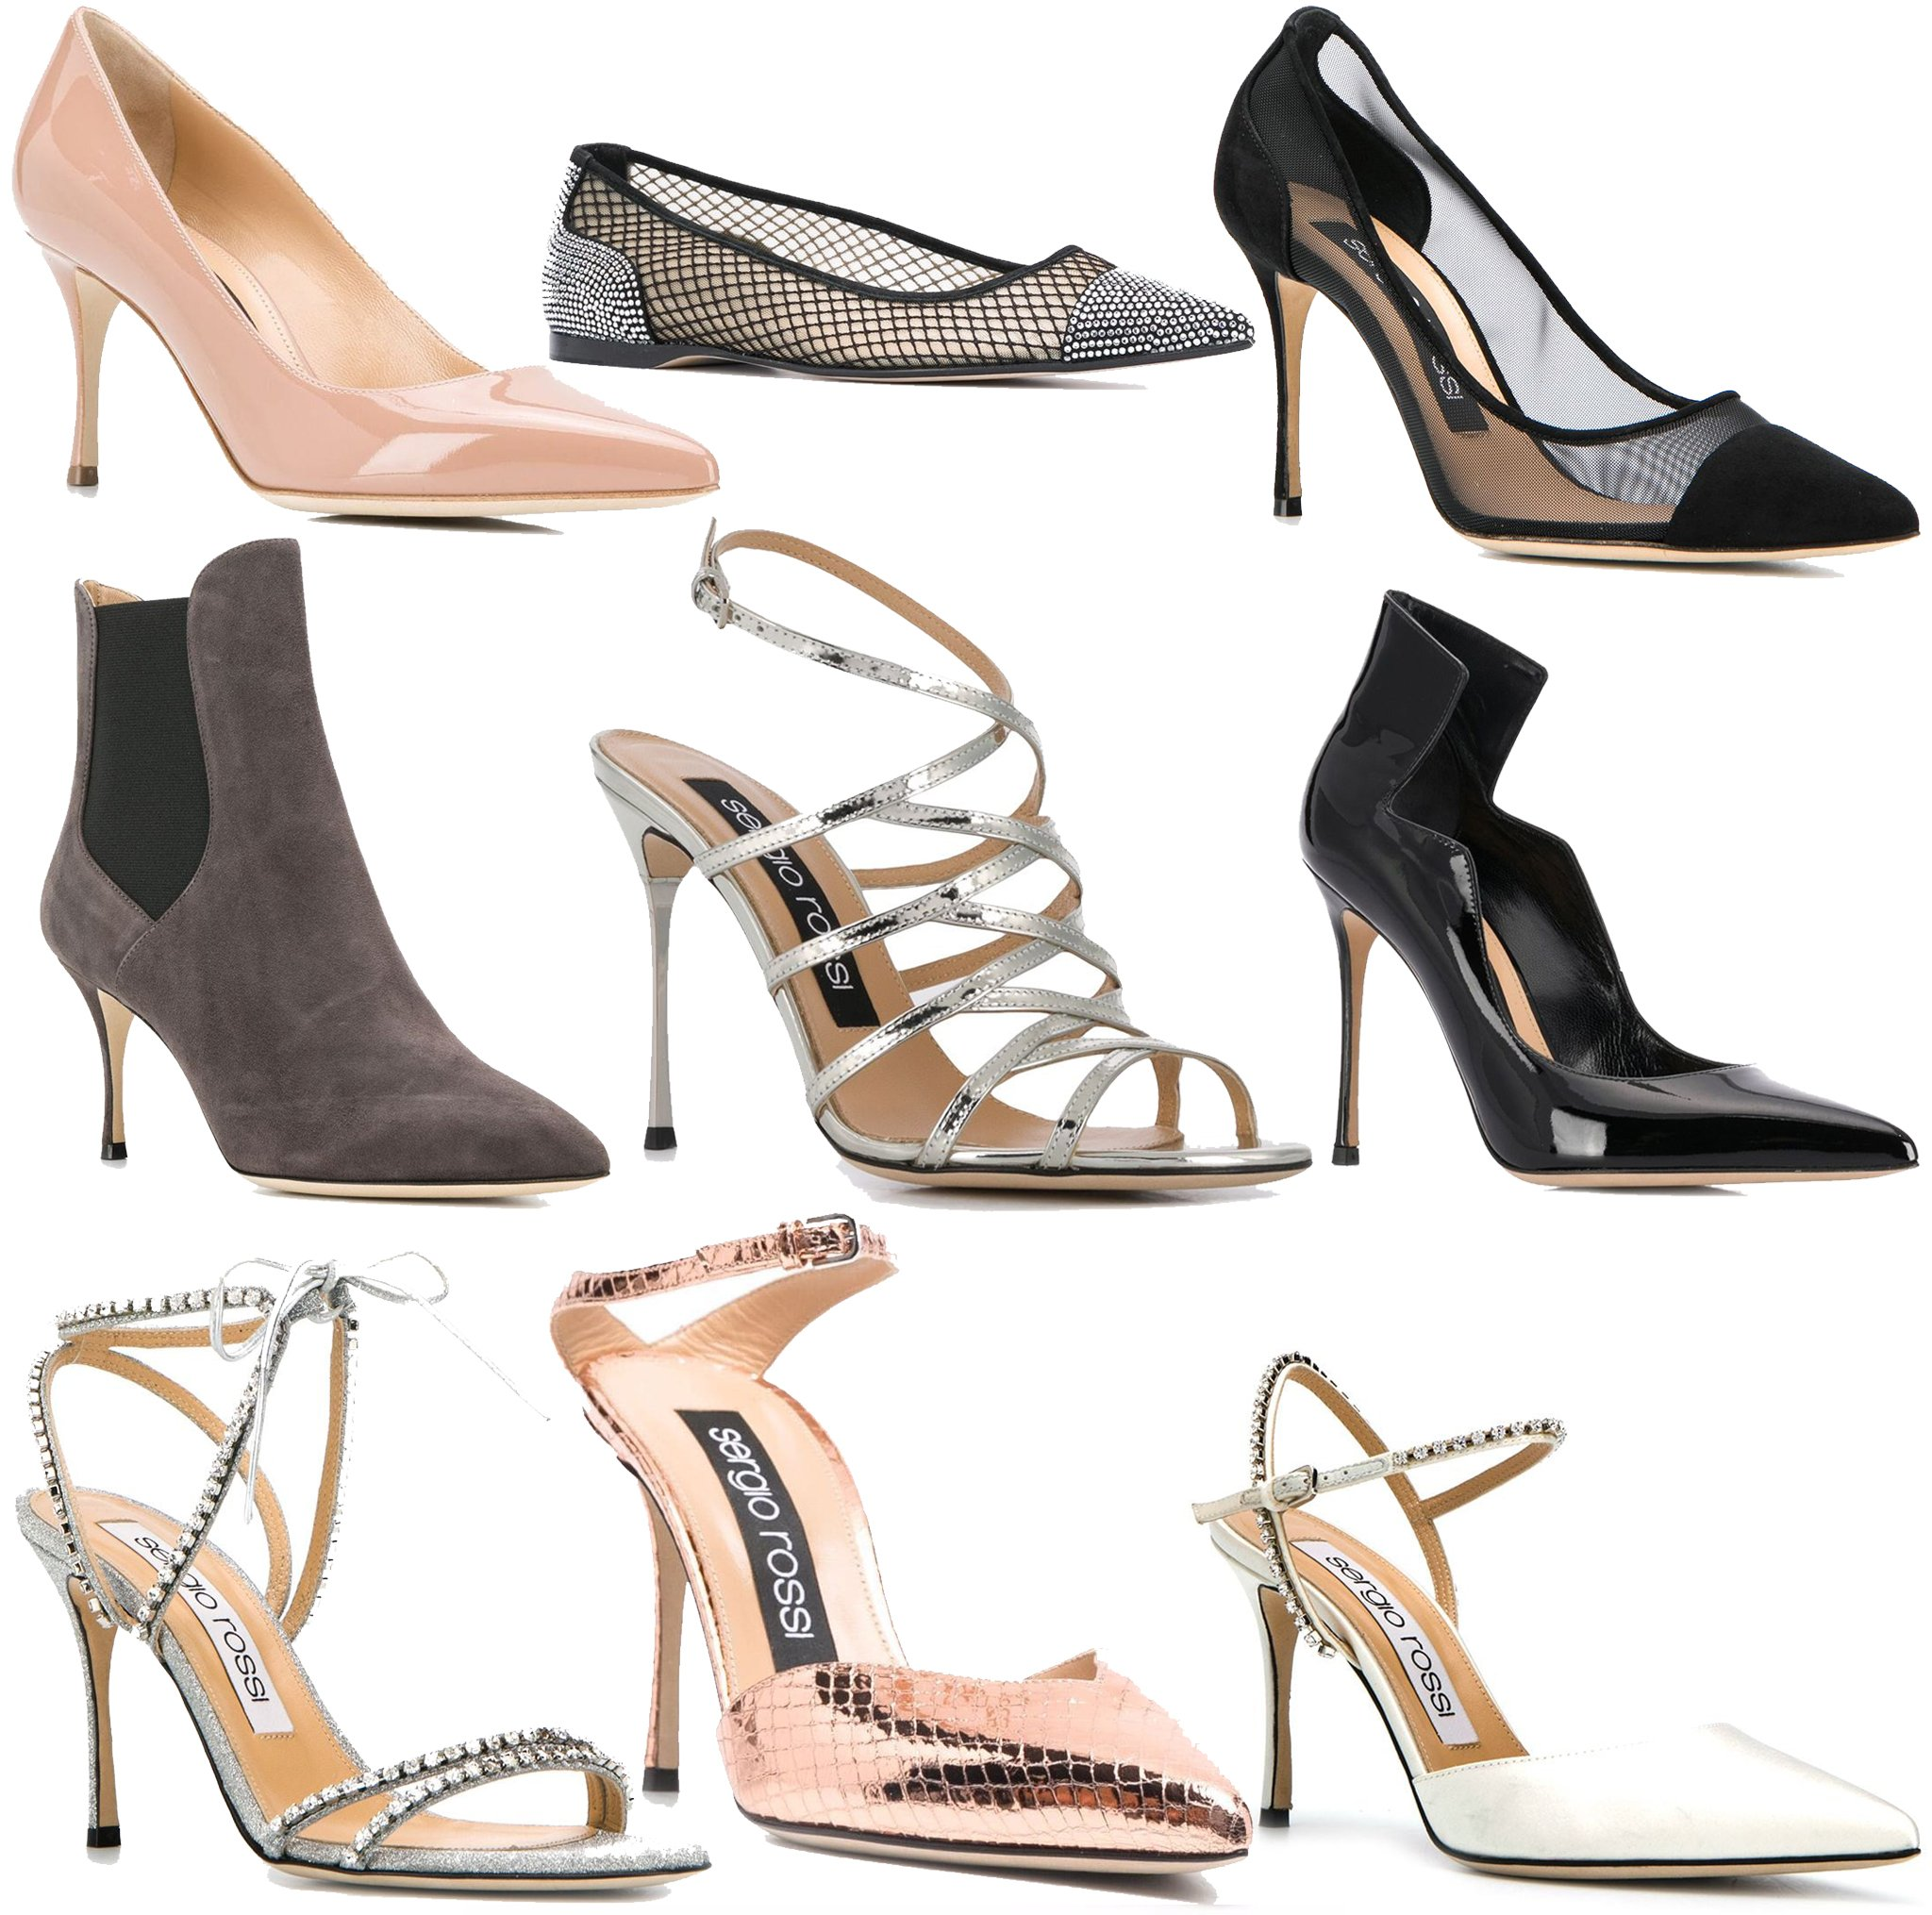 Sergio Rossi's famous Godiva style is available in a variety of silhouettes and materials